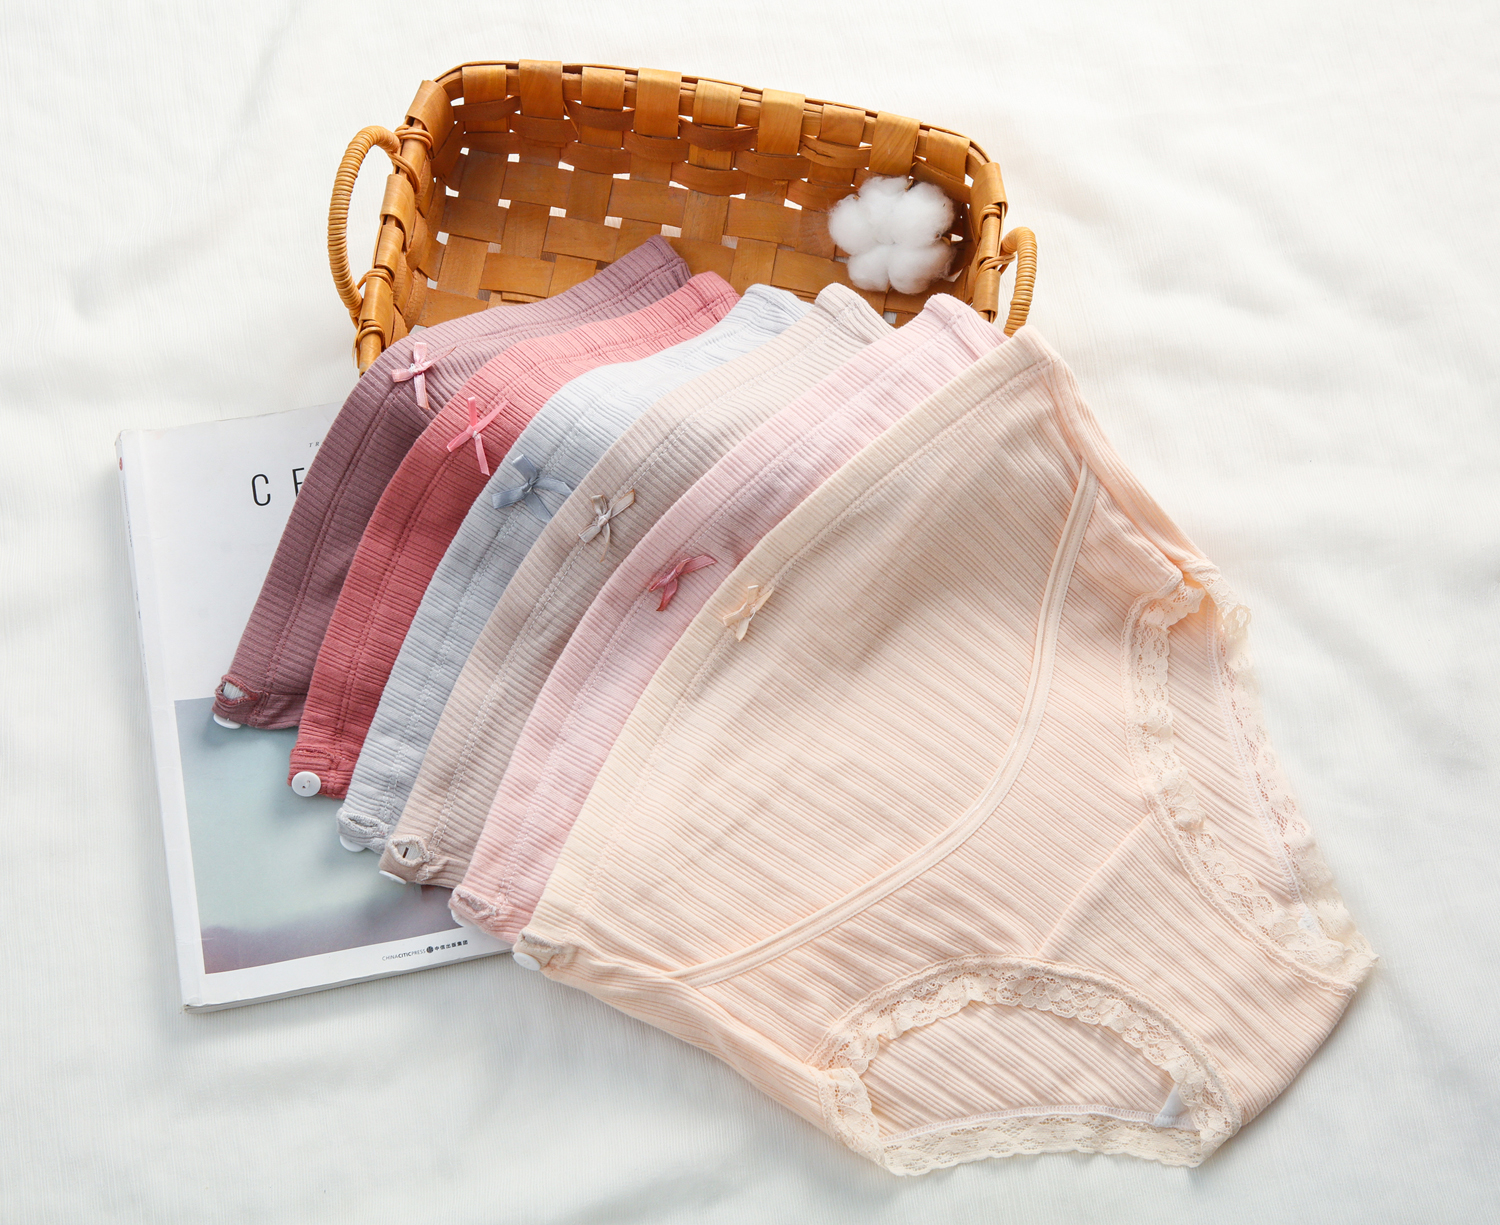 High-waist Maternity Panties Women Pregnant Briefs Clothes Pregnancy Underwear Stretch Cotton Fabric Wholesale